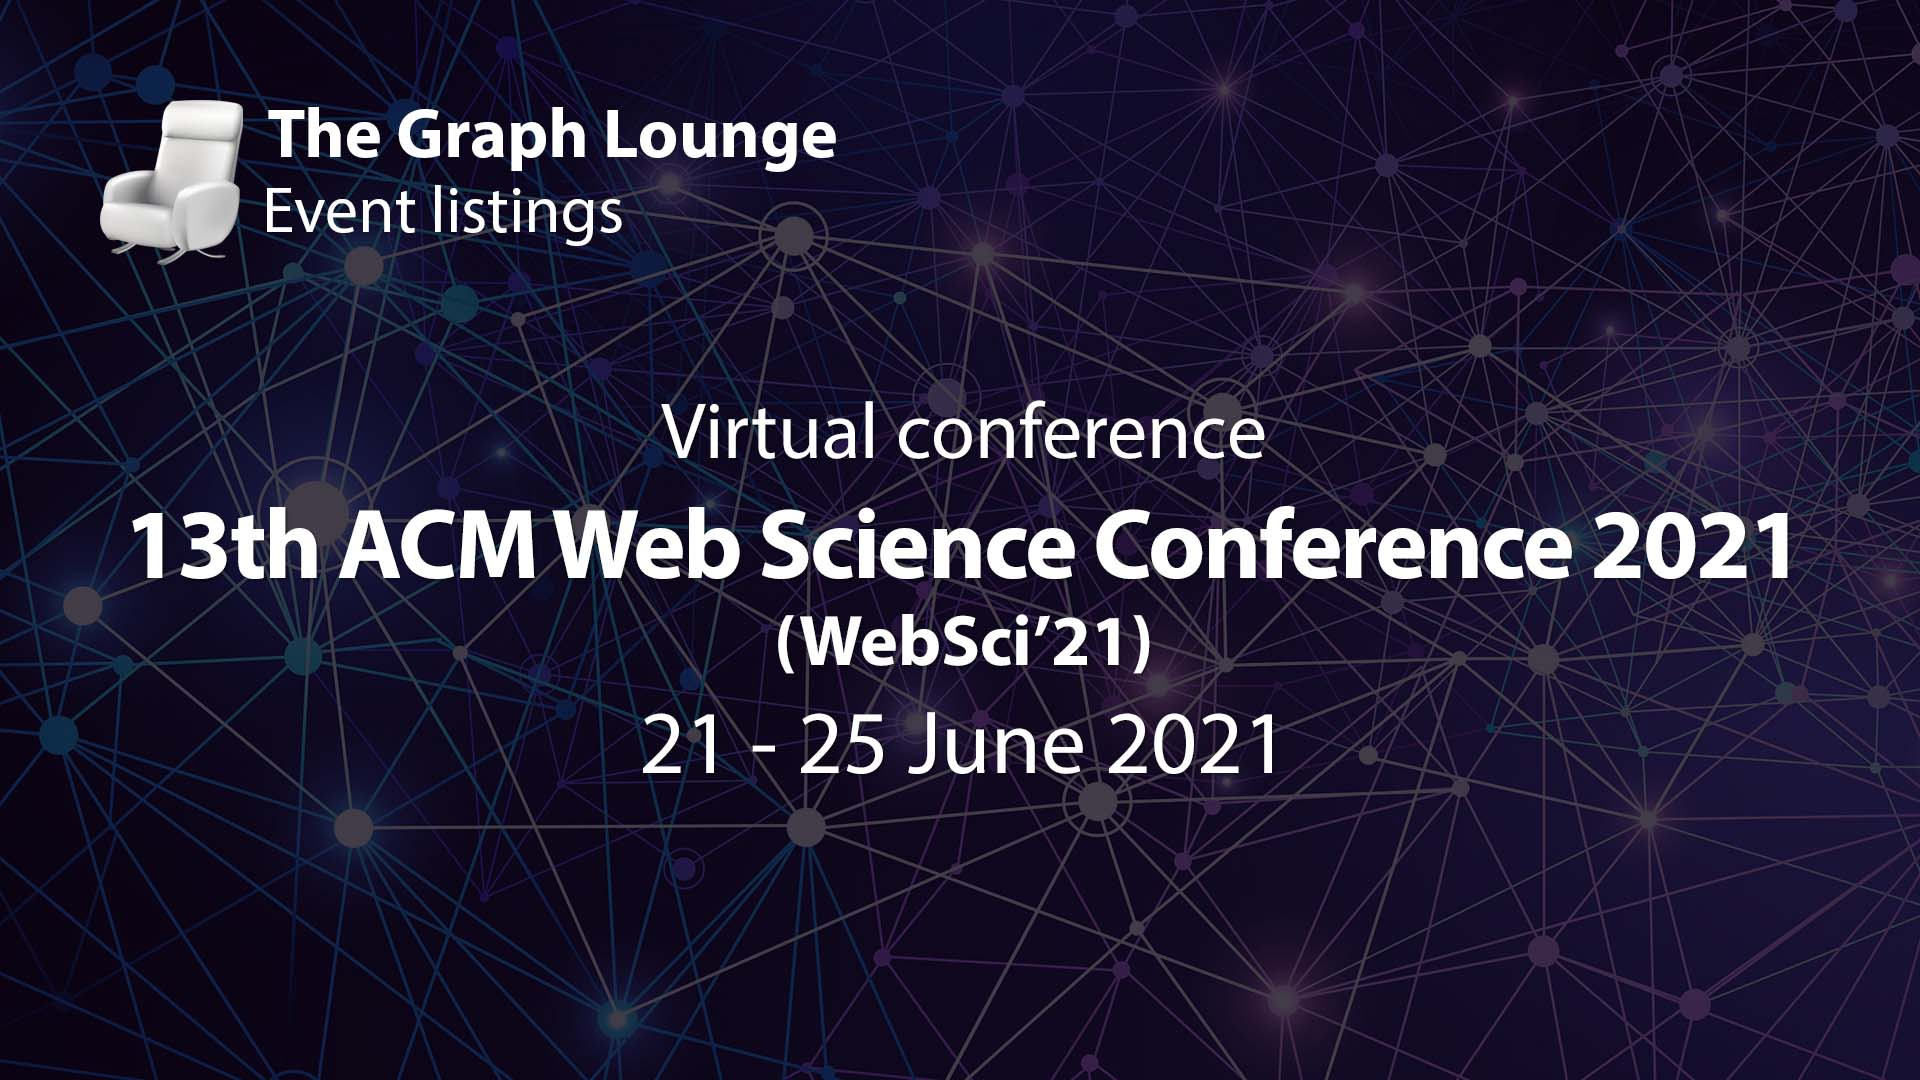 13th ACM Web Science Conference 2021 (WebSci 21)